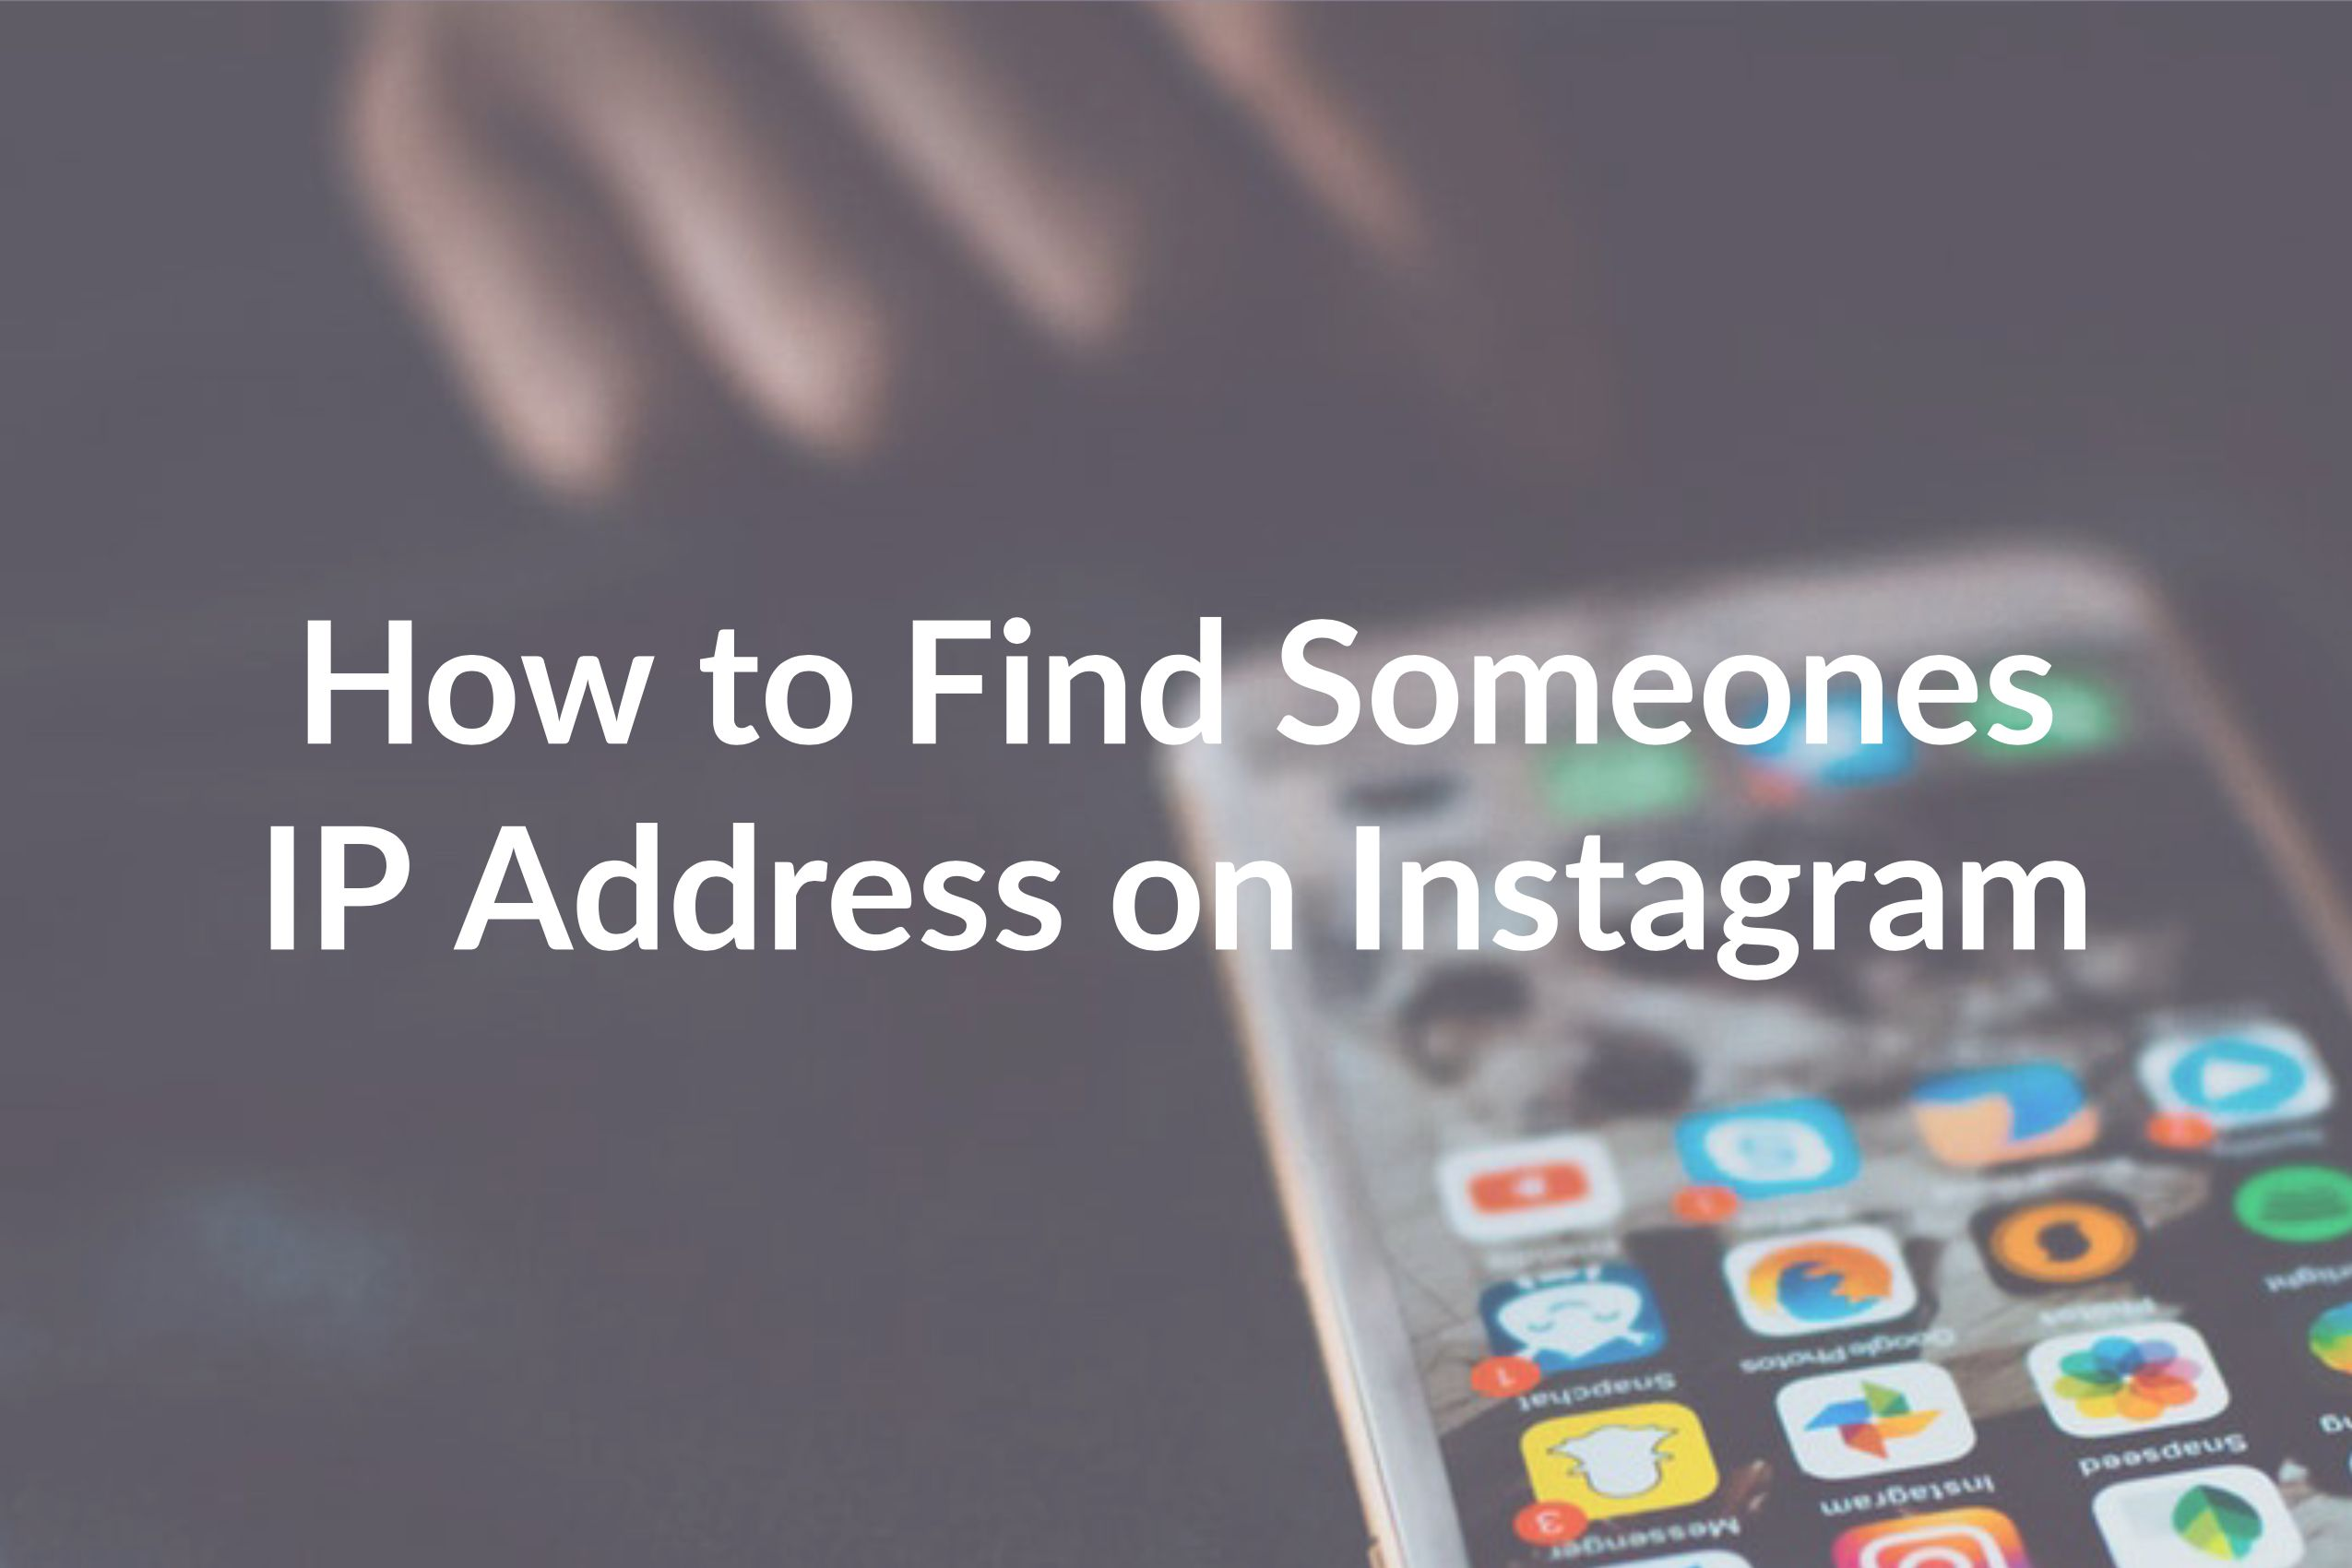 How To Get An Ip Address From Someones Instagram